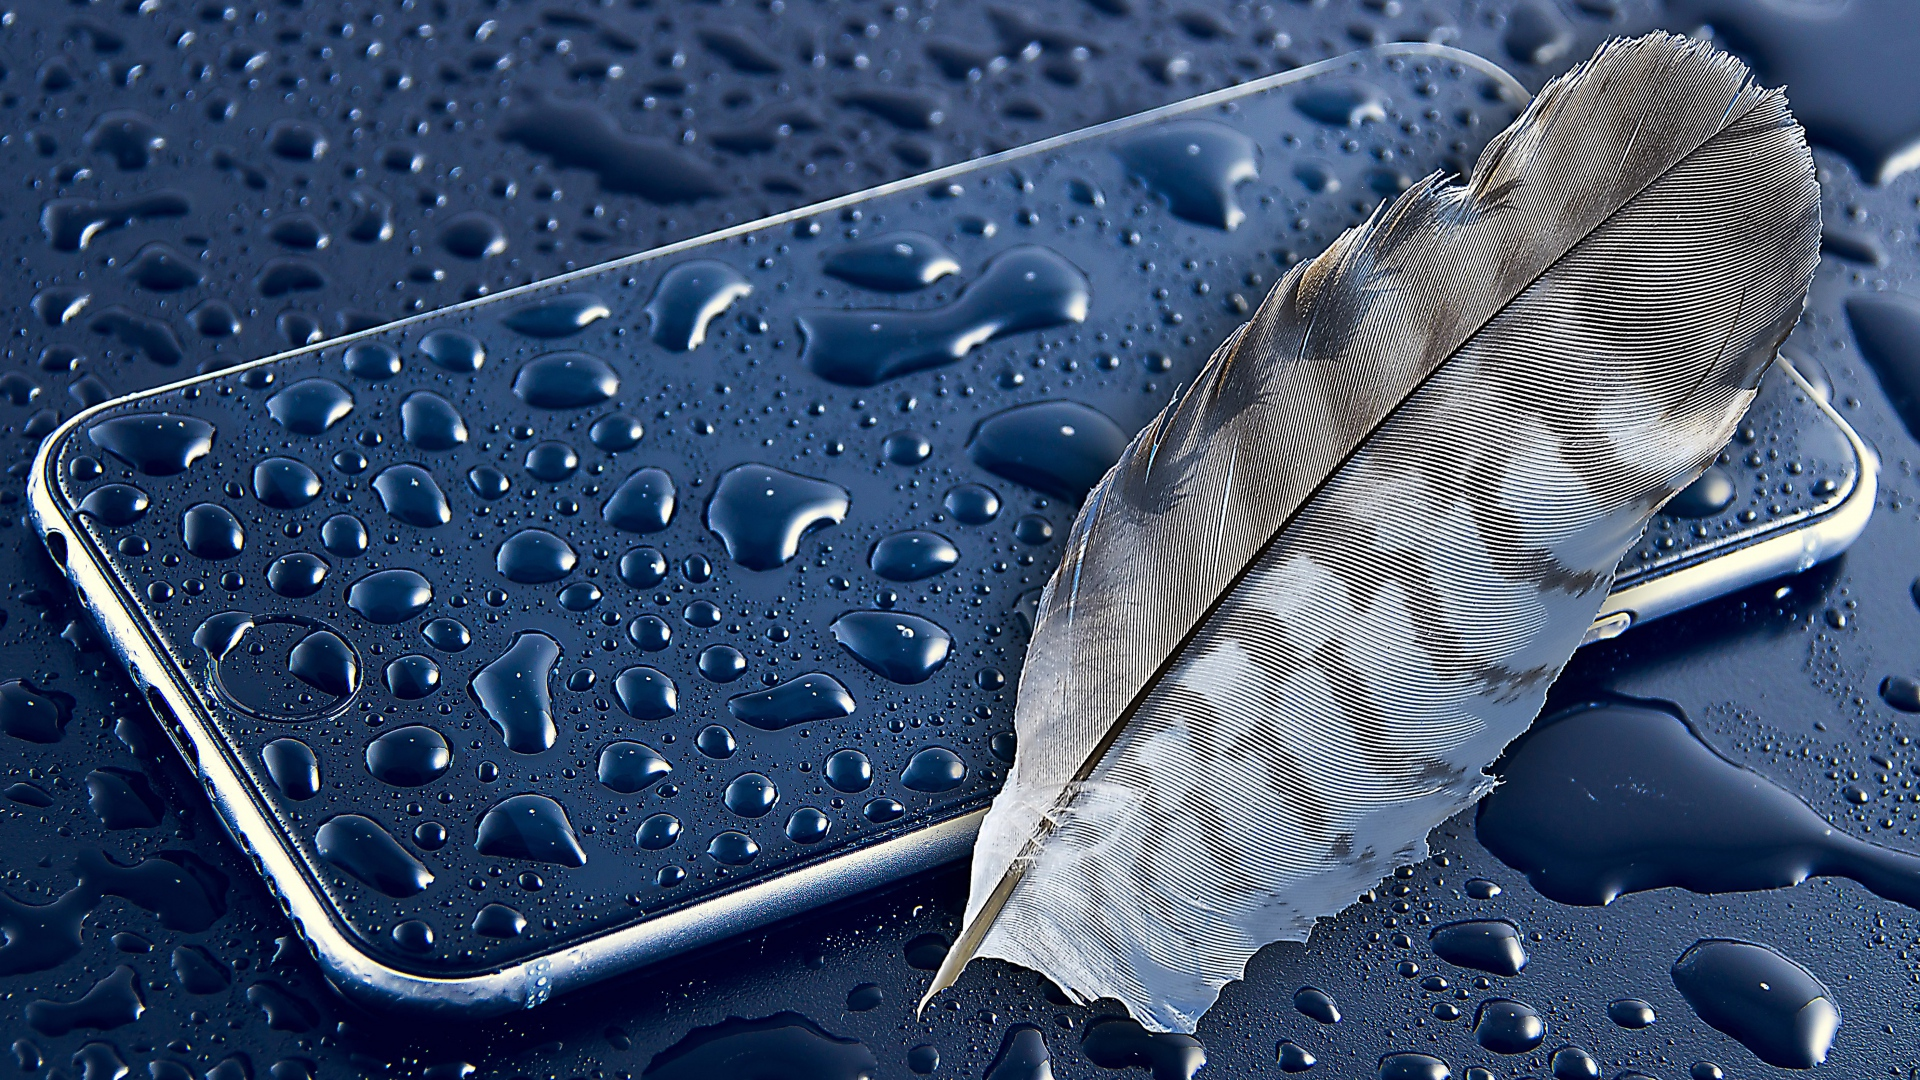 1920x1200 Apple Feather 1080p Resolution Hd 4k Wallpapers